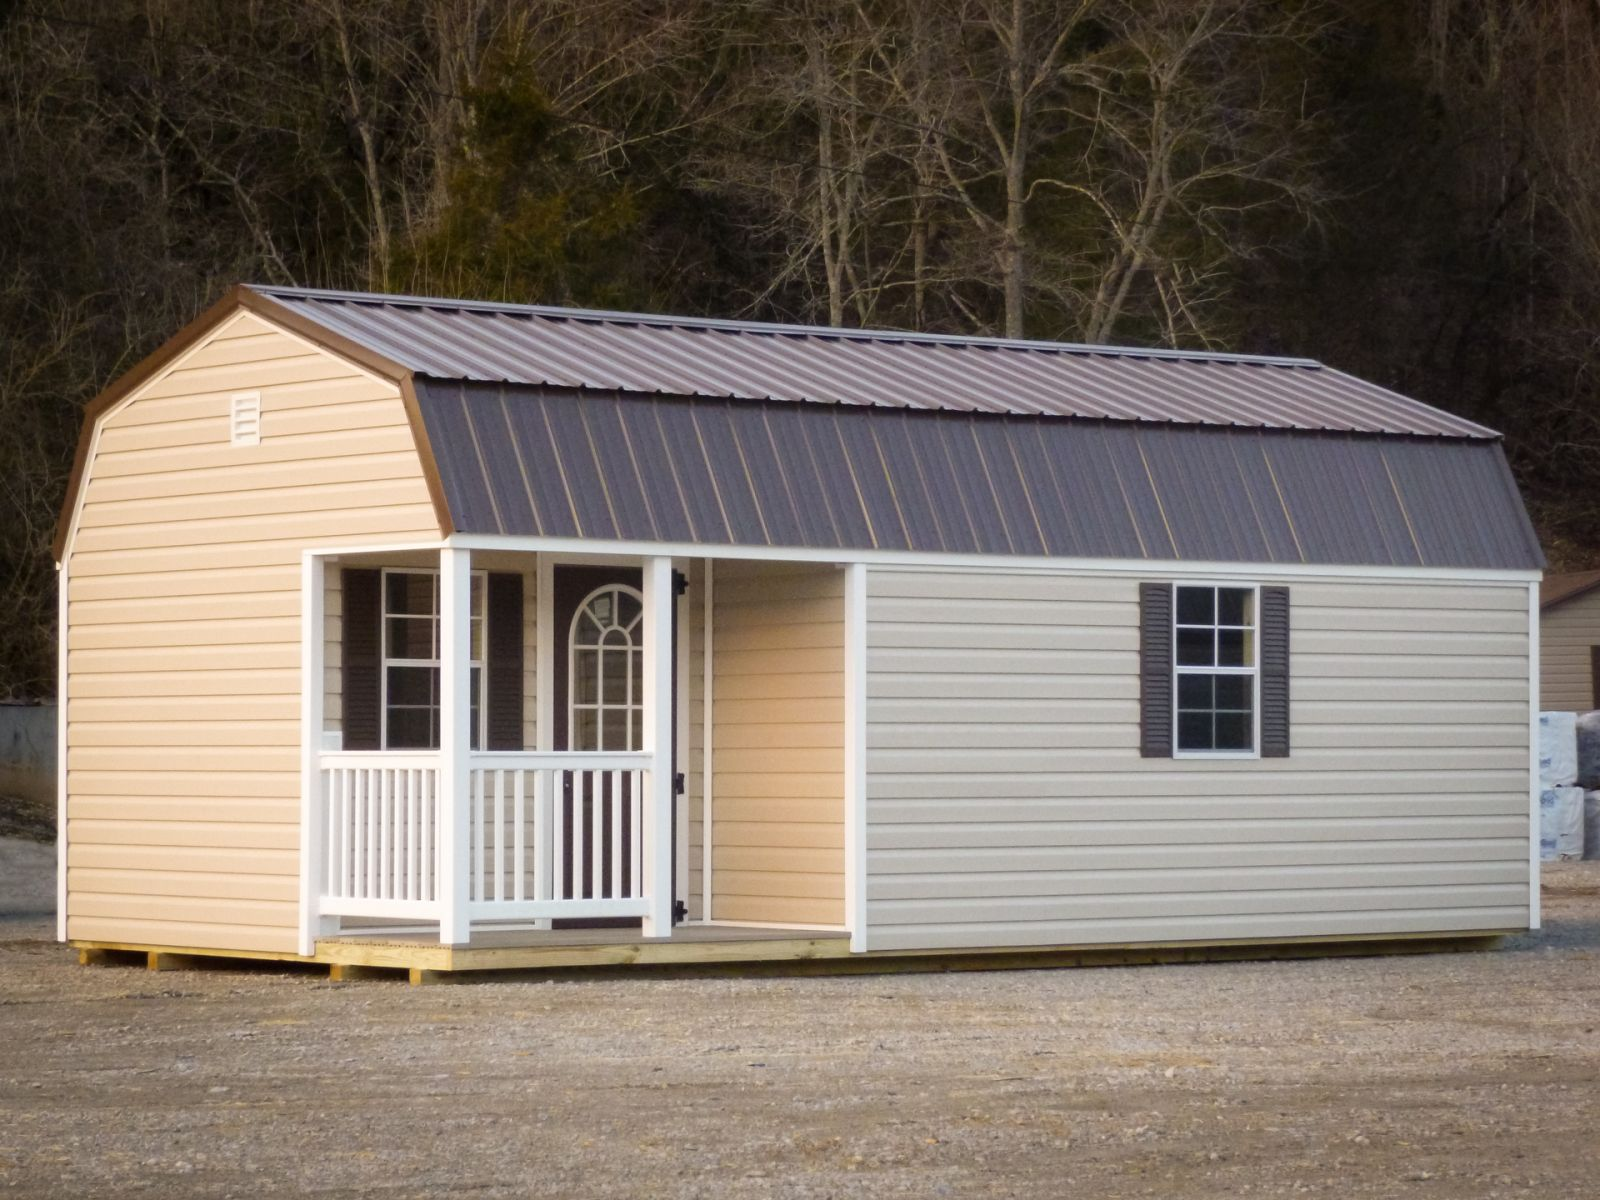 A prefab cabin for sale in Glasgow, KY